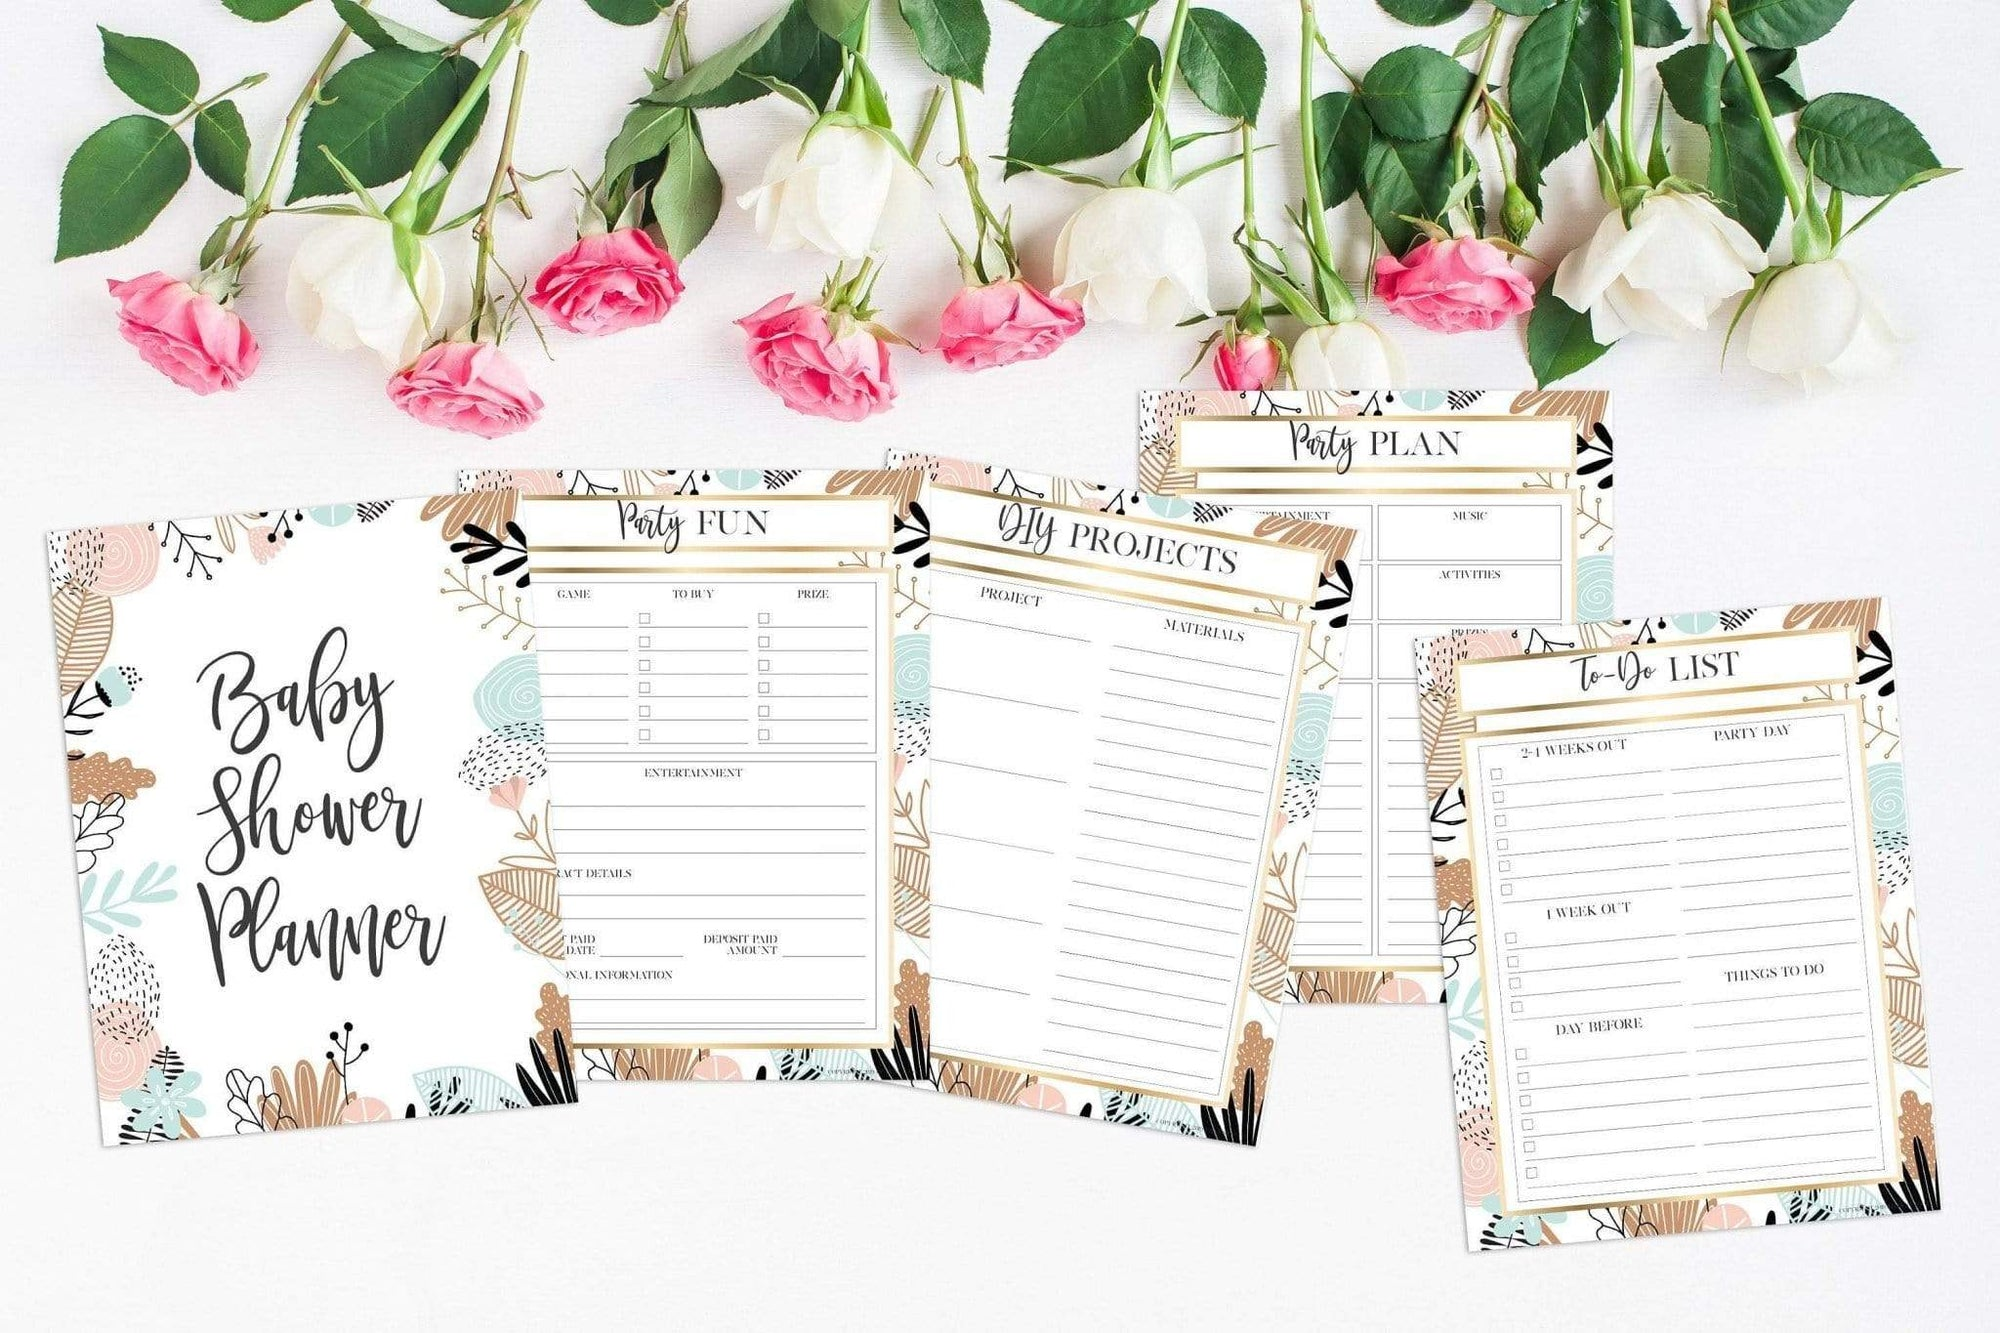 Leanne & Co. Instant Download Gender Neutral Baby Shower Party Planner Instant Download